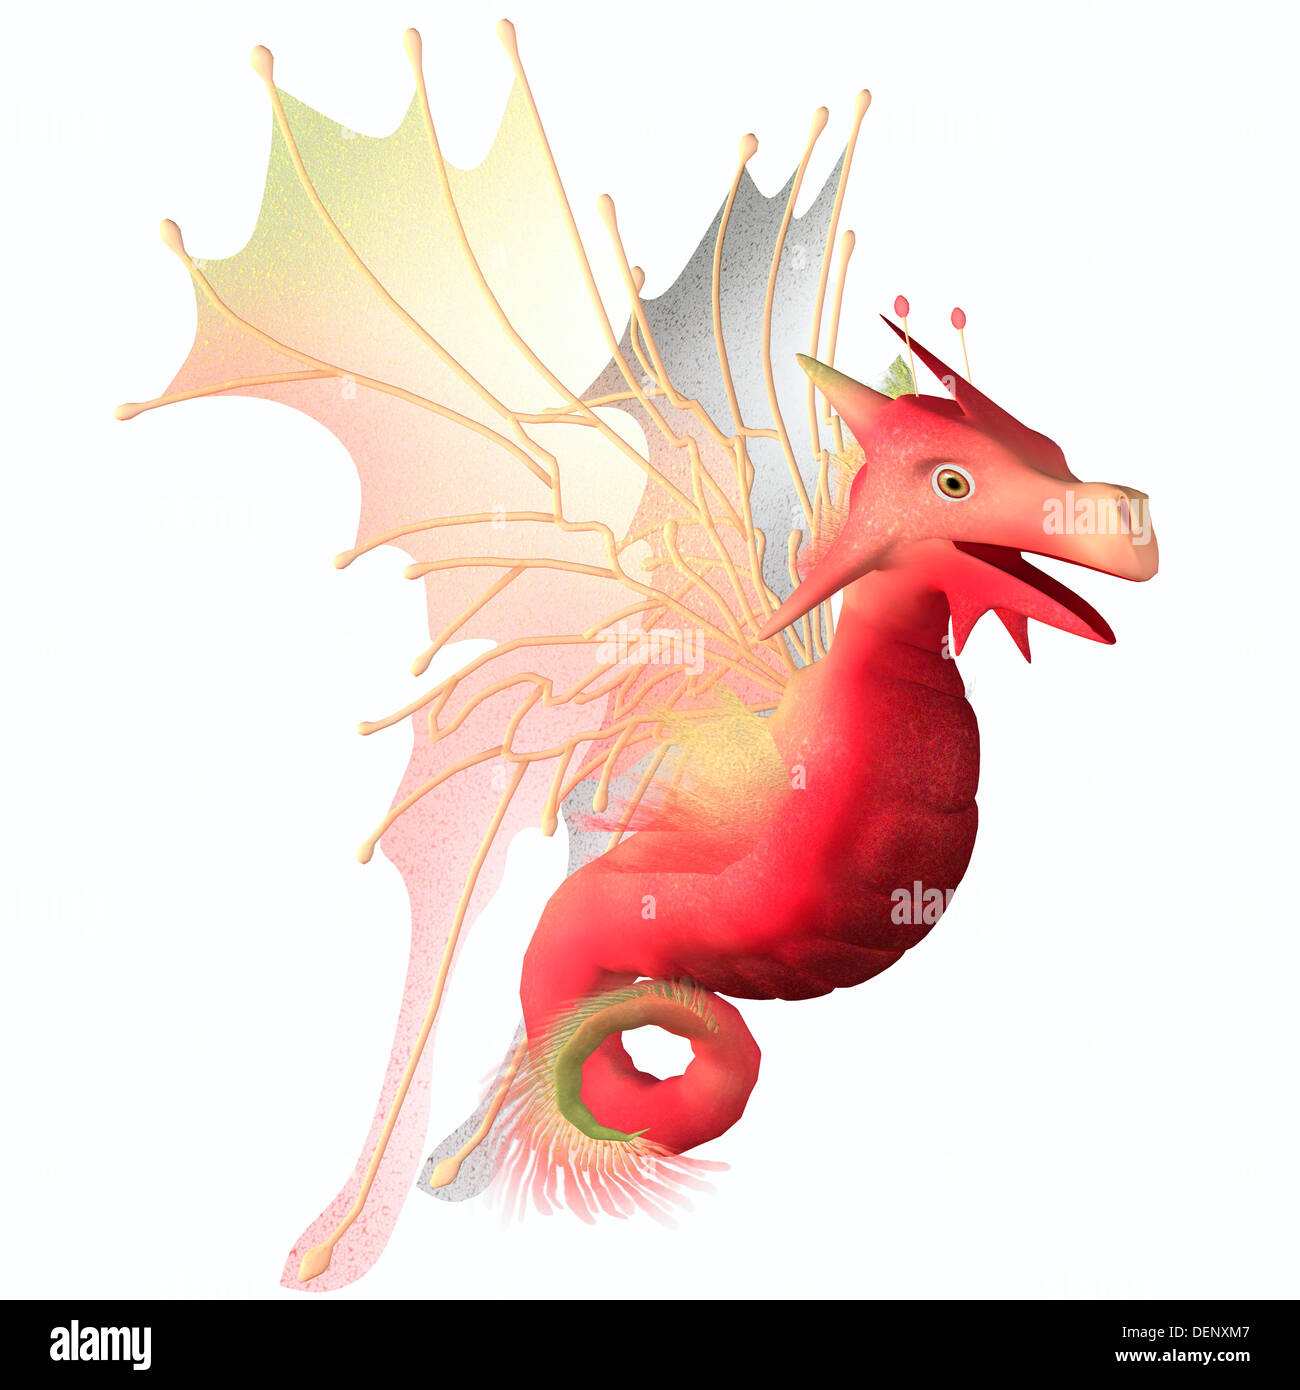 A creature of myth and fantasy the dragon is a friendly animal with horns and wings. - Stock Image